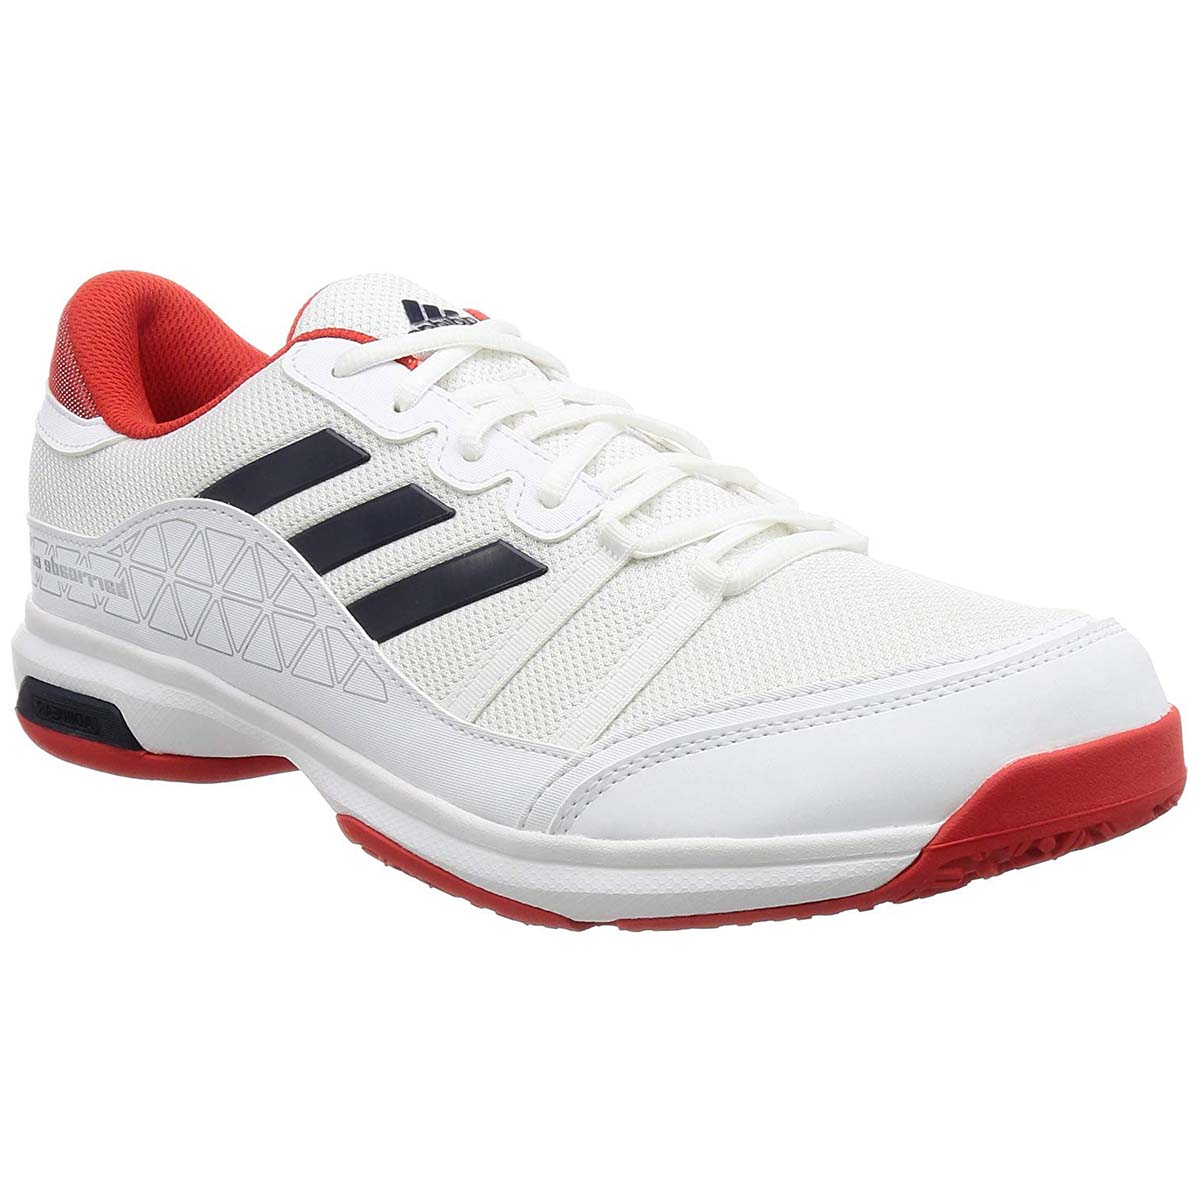 b5f49234f8d57e Buy Adidas Barricade Court Tennis Shoes Online in India